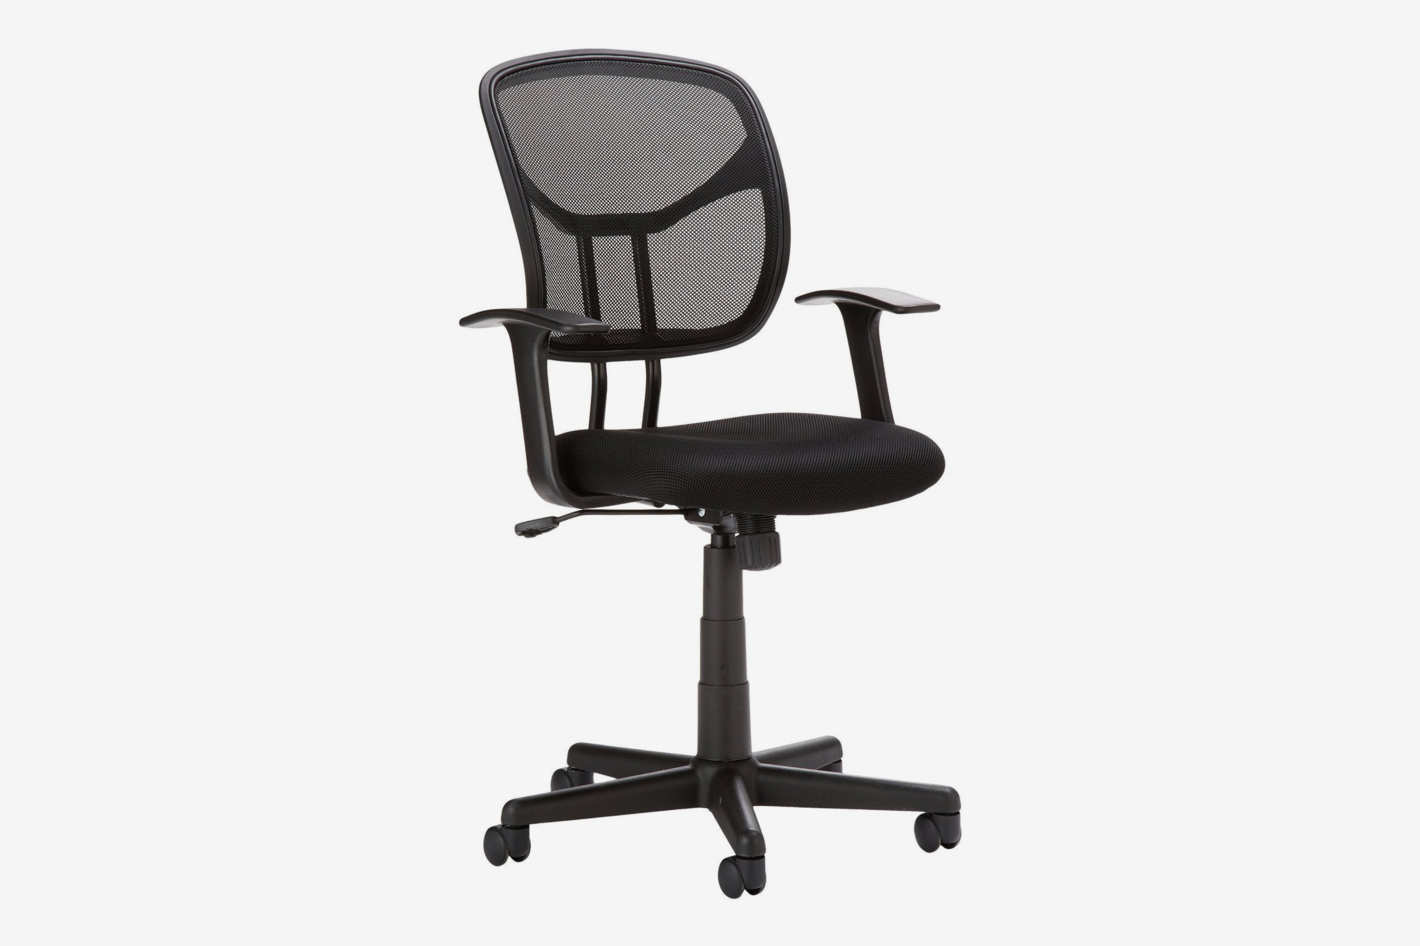 chair design basics best rocking office 16 chairs and home 2018 amazonbasics mid back mesh at amazon